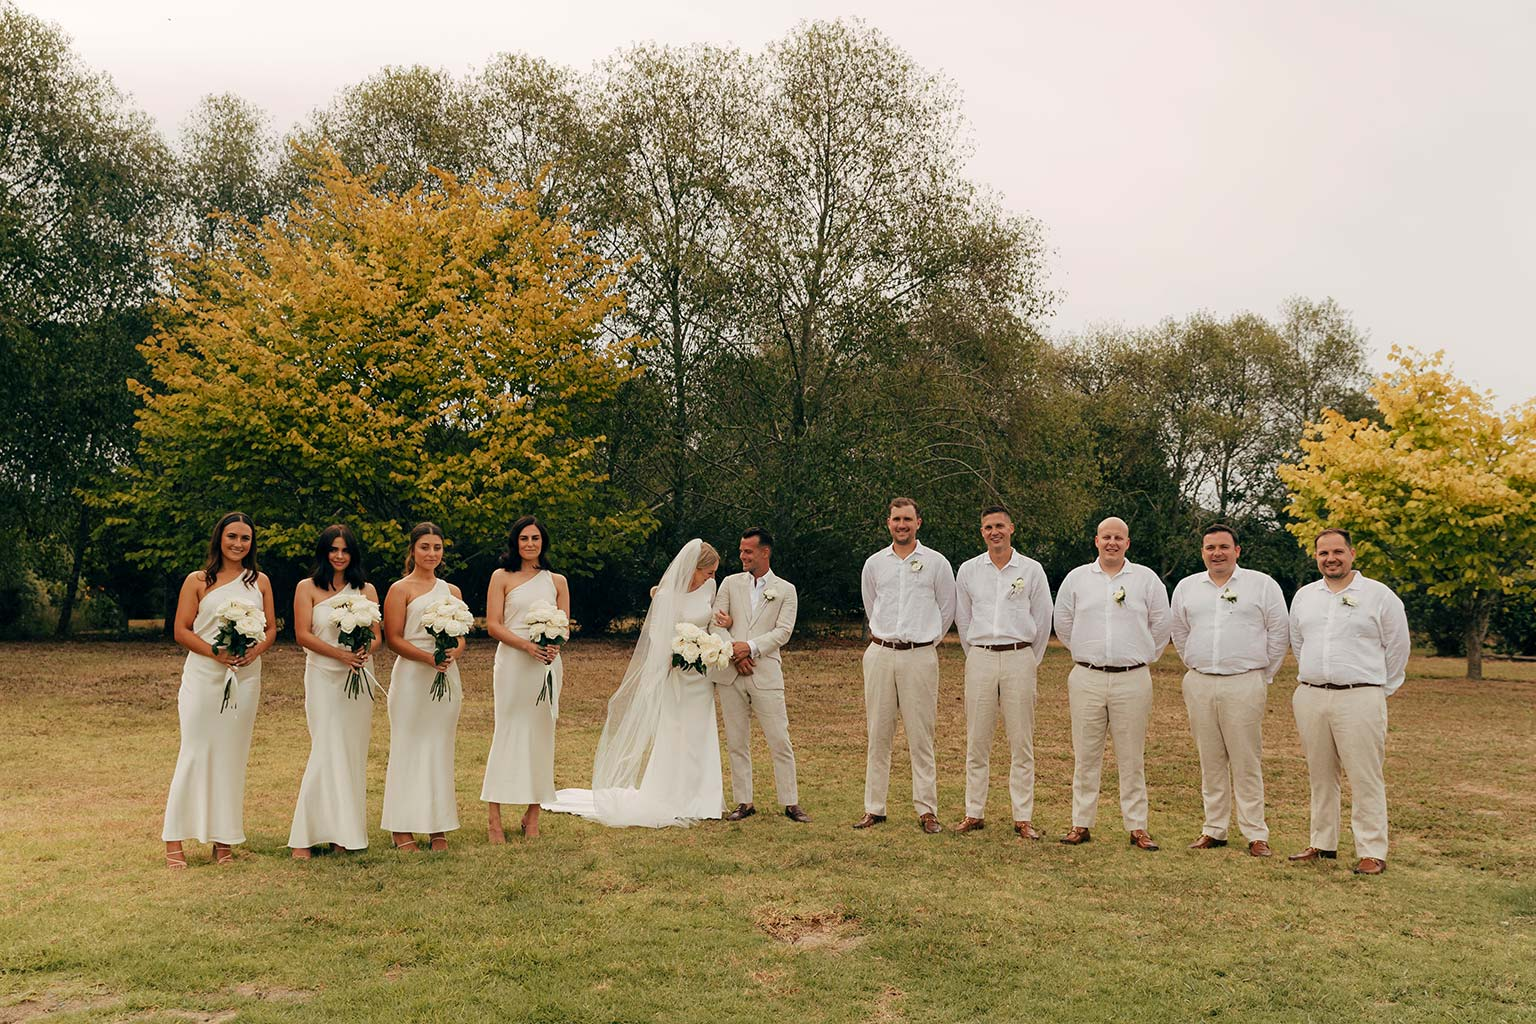 Vinka Design Bridal Wear features Real Wedding Matt and Emilia - bridal party pose, bride wearing stunning bespoke Audrey gown from Modern Muse Collection